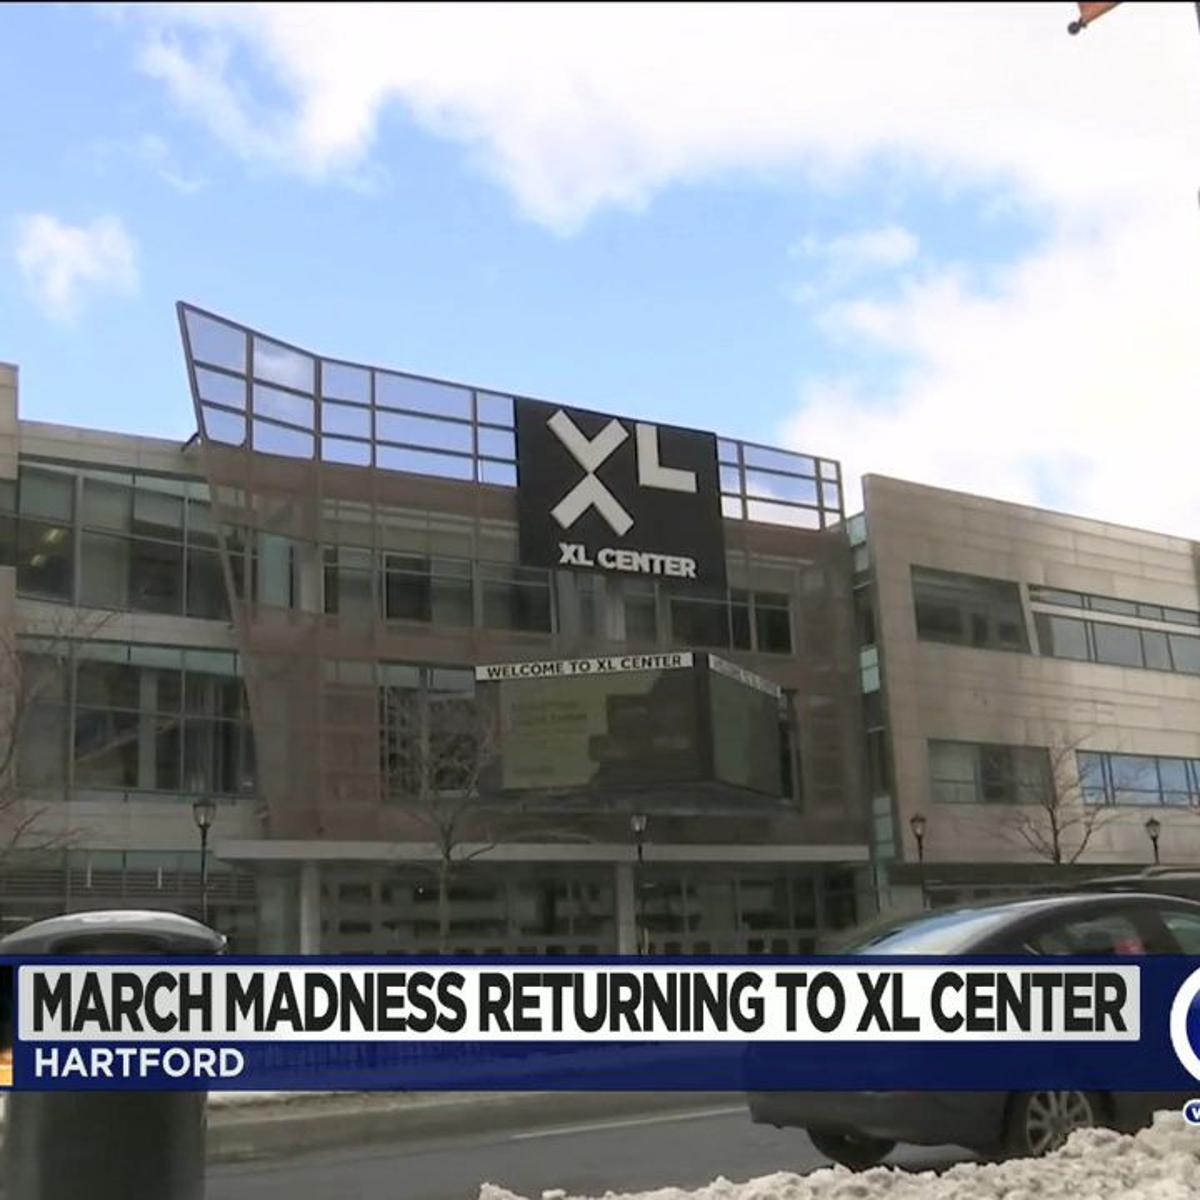 Hartford To Welcome March Madness News Wfsb Com